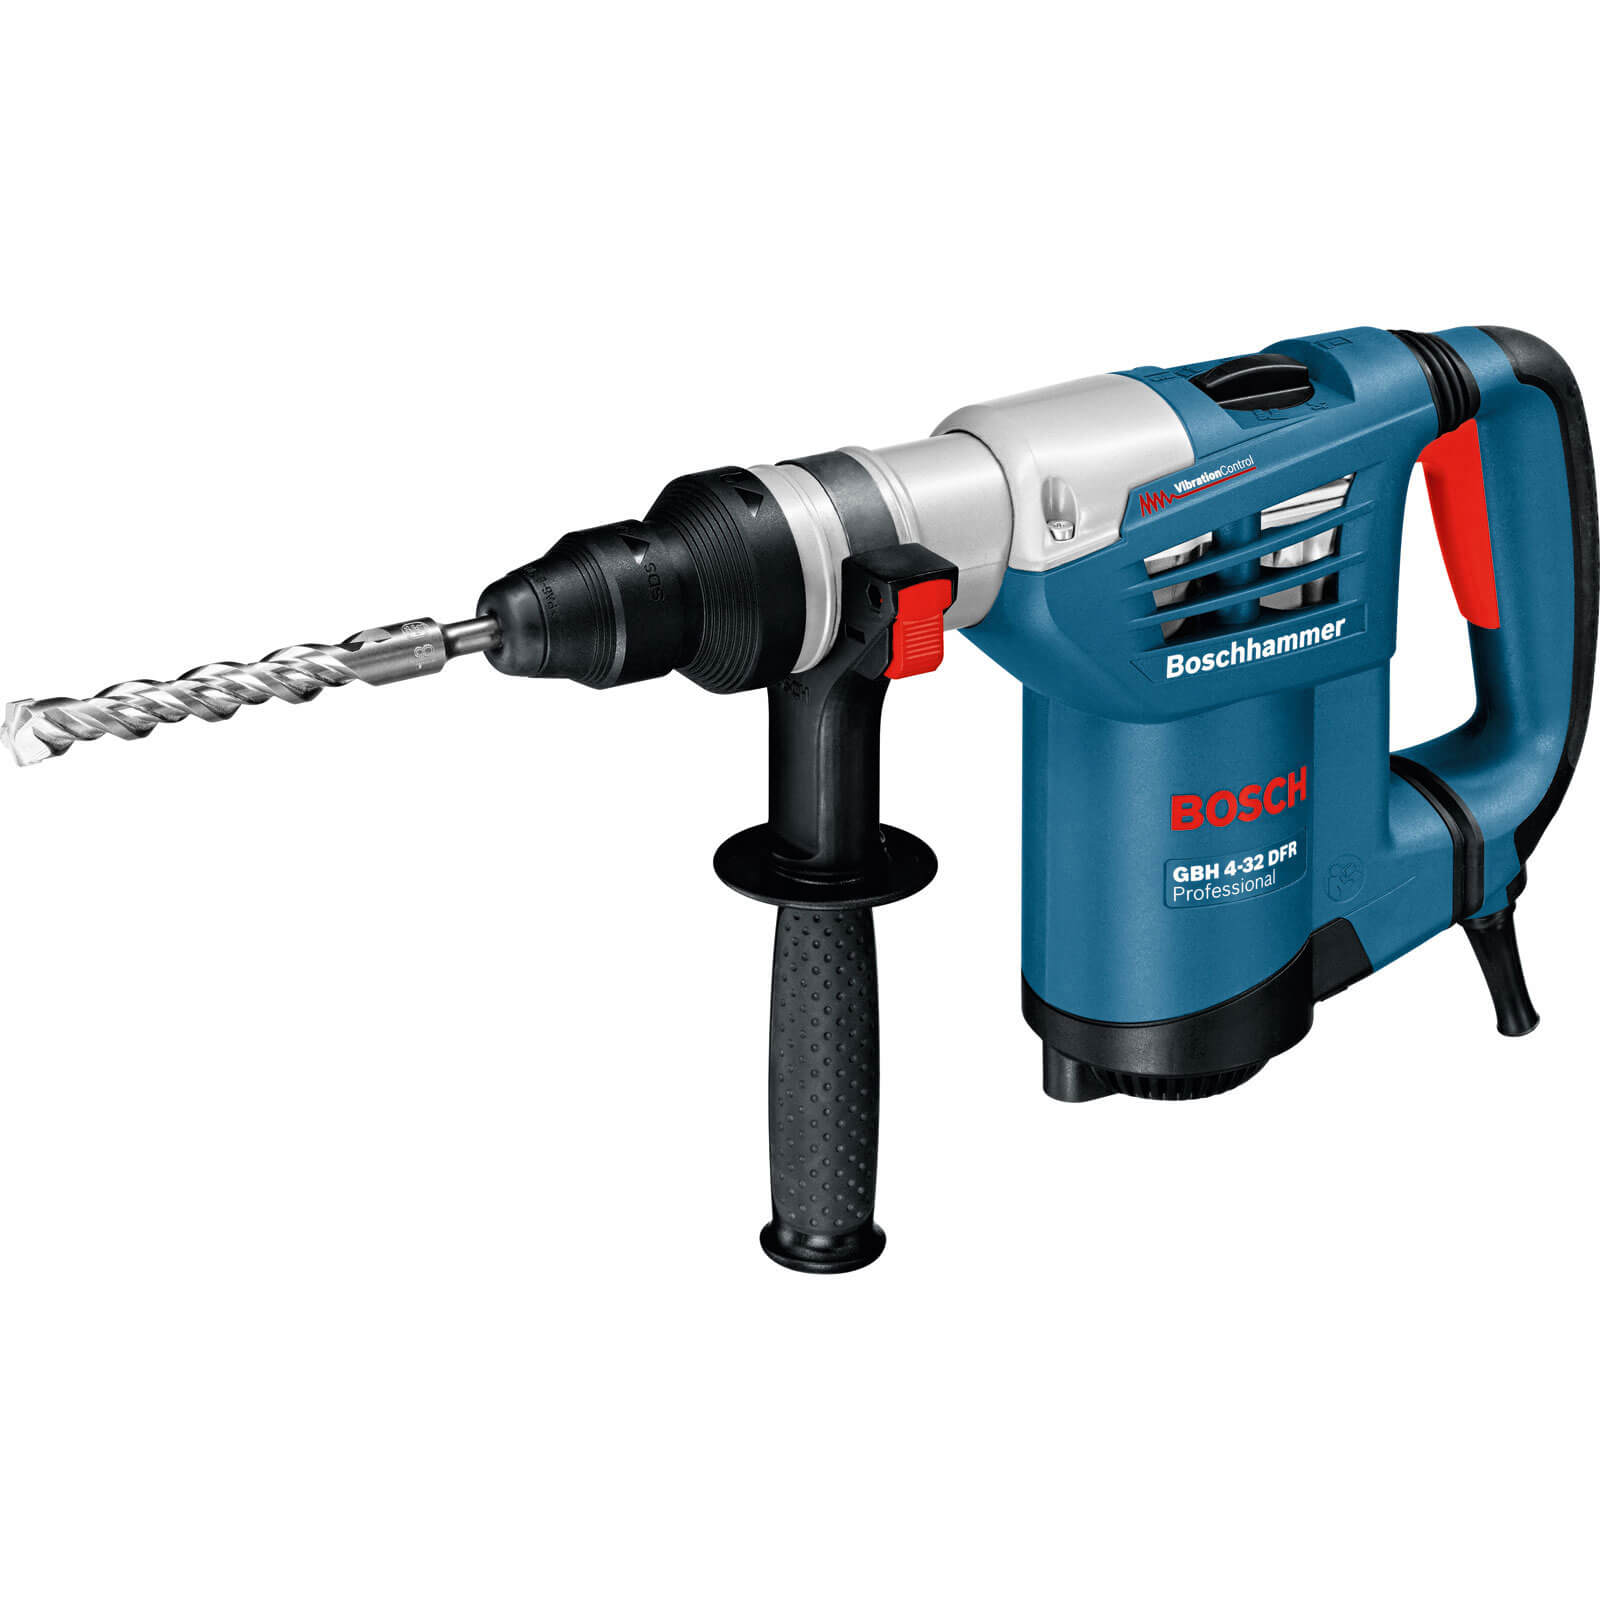 Bosch GBH 4-32 DFR 4Kg SDS Plus Rotary Hammer Drill + Quick Change Chuck 900w 240v